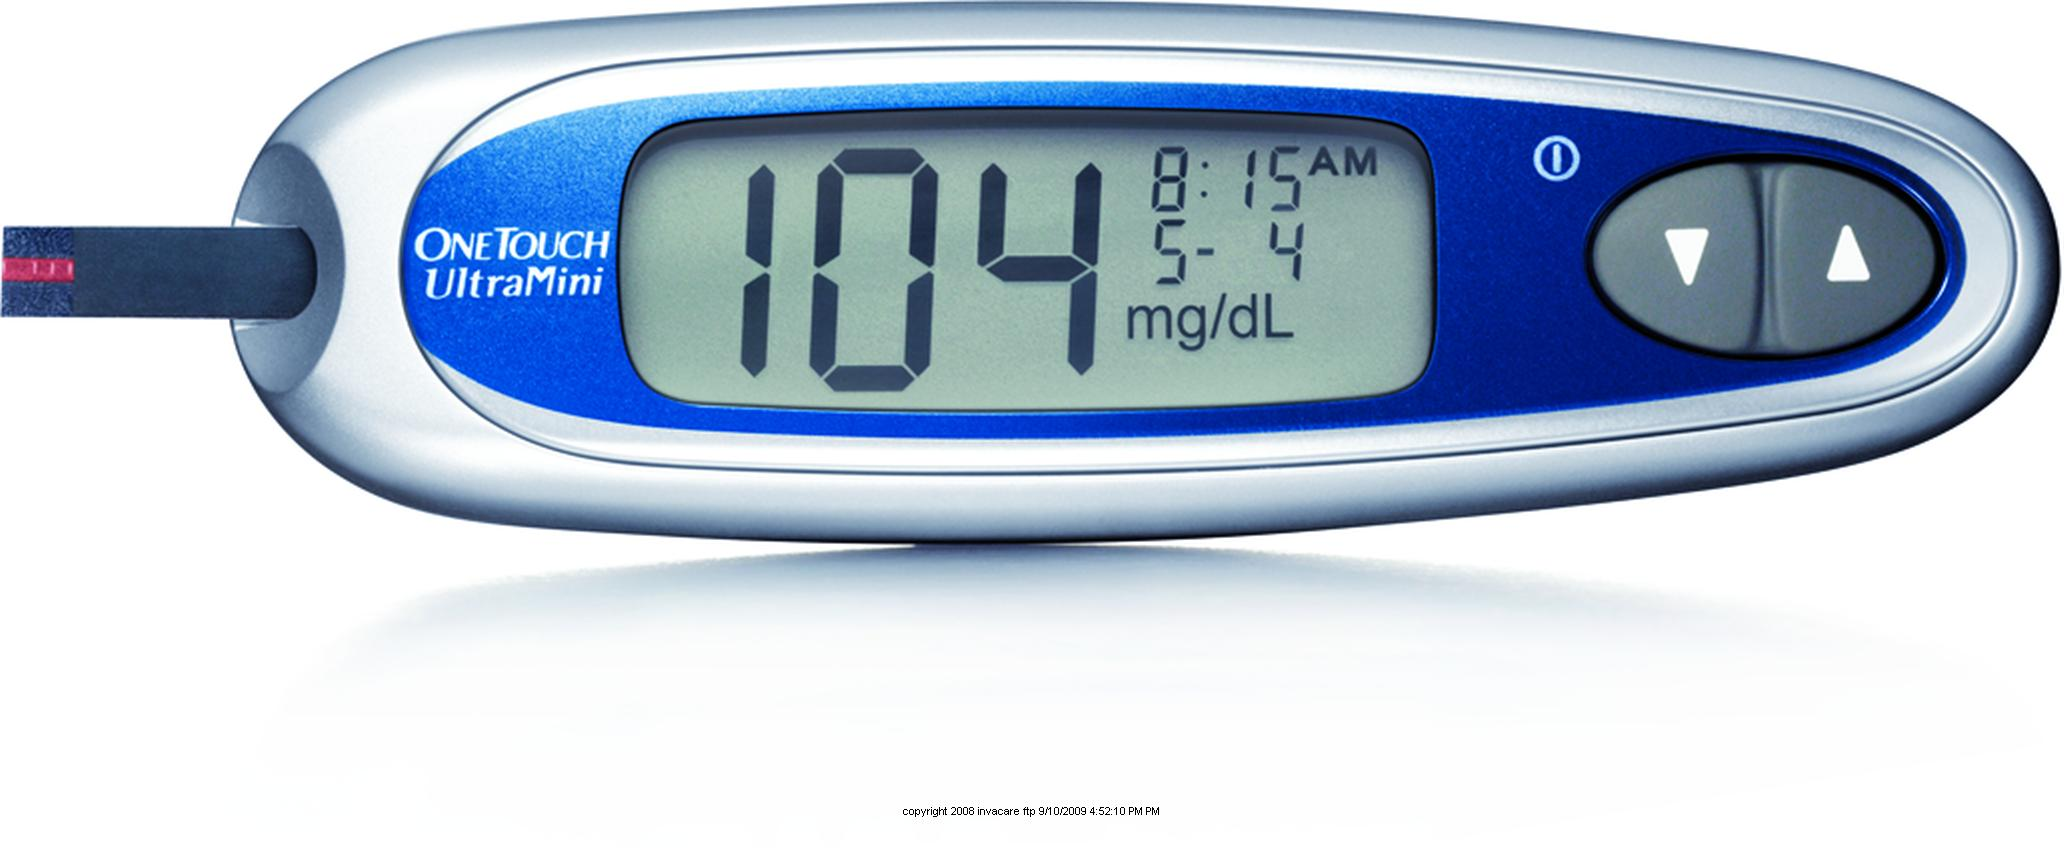 OneTouch Ultra Mini glucose meter